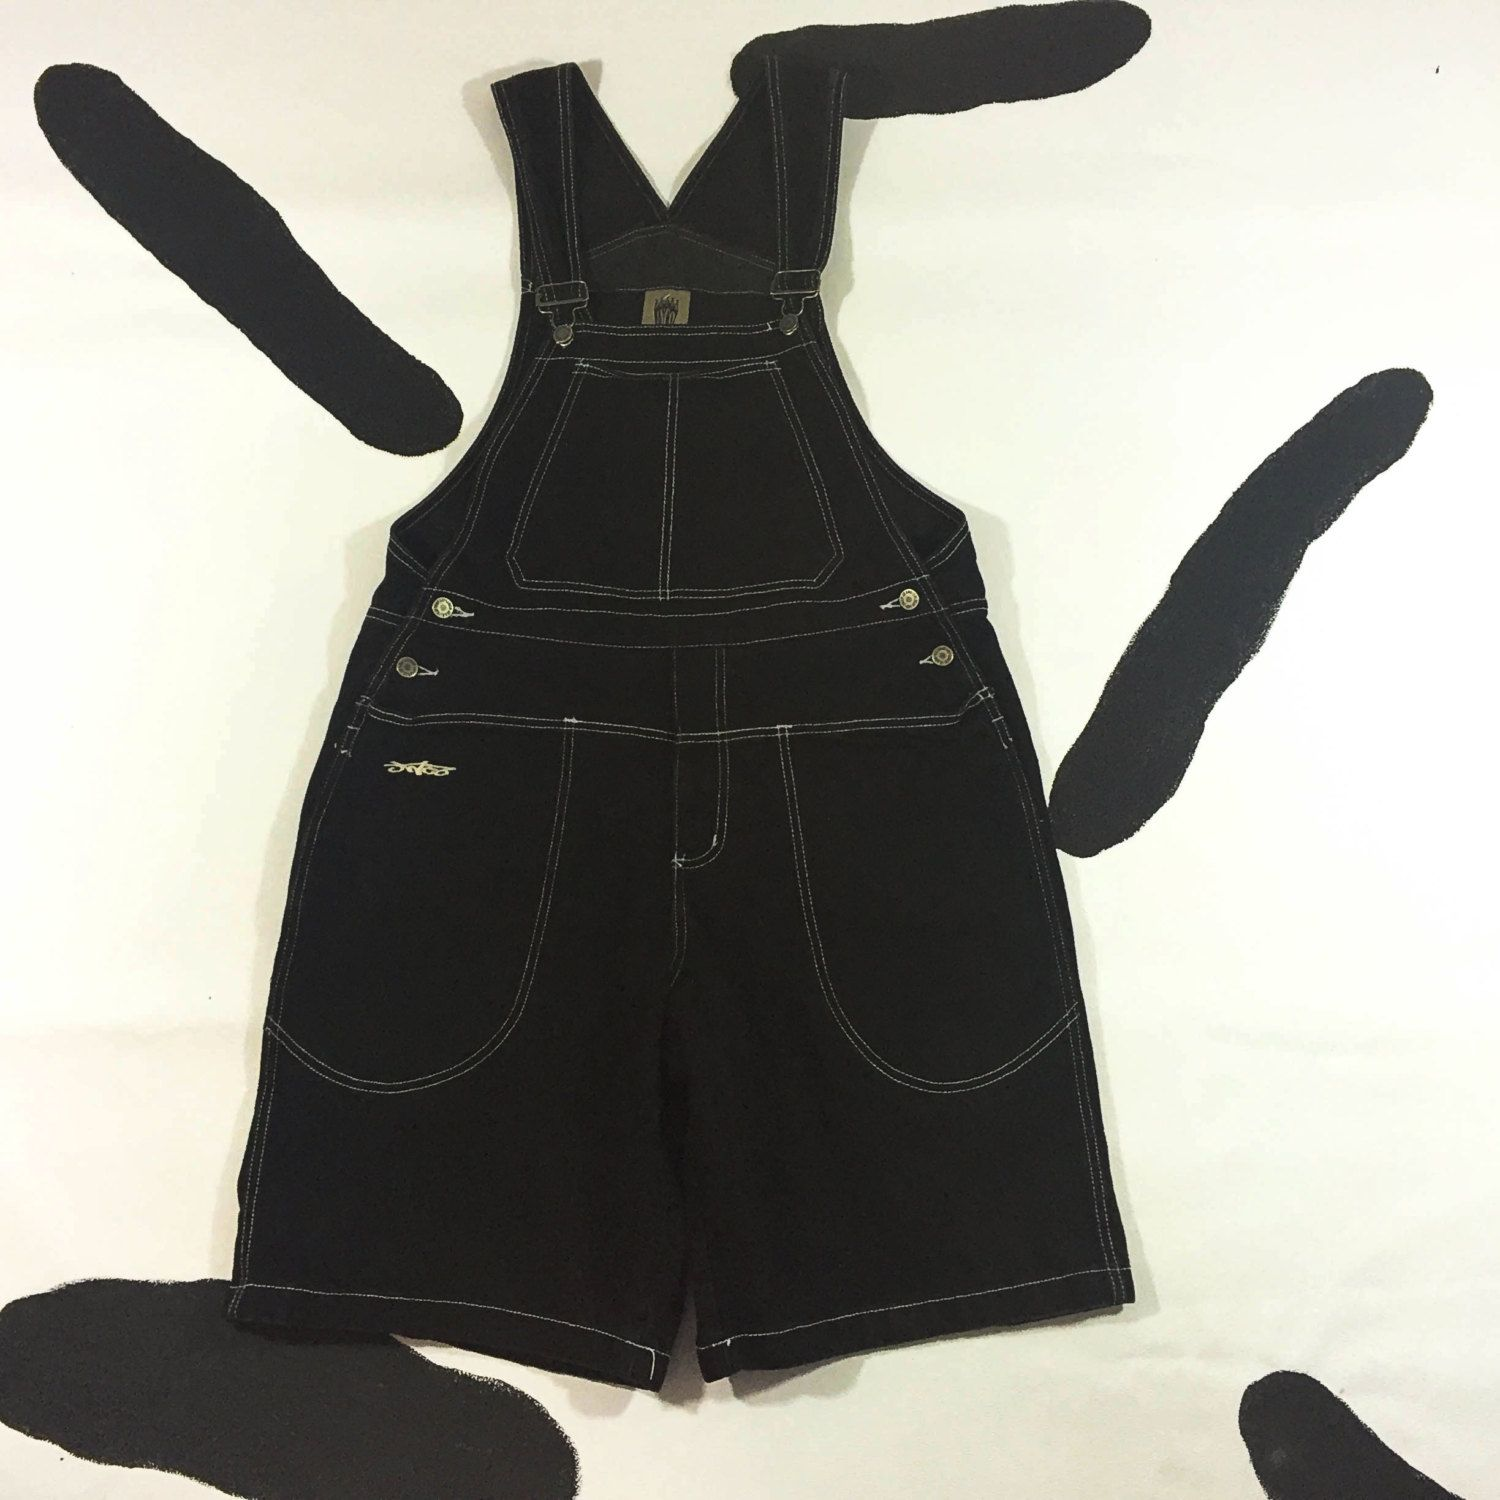 dda8787176 90s JNCO Black Denim Overalls   Size Large   Contrast Stitching   Skater    Club Kid   Vaporwave   Nu Metal   Made in USA   Oversize   Mens by ...